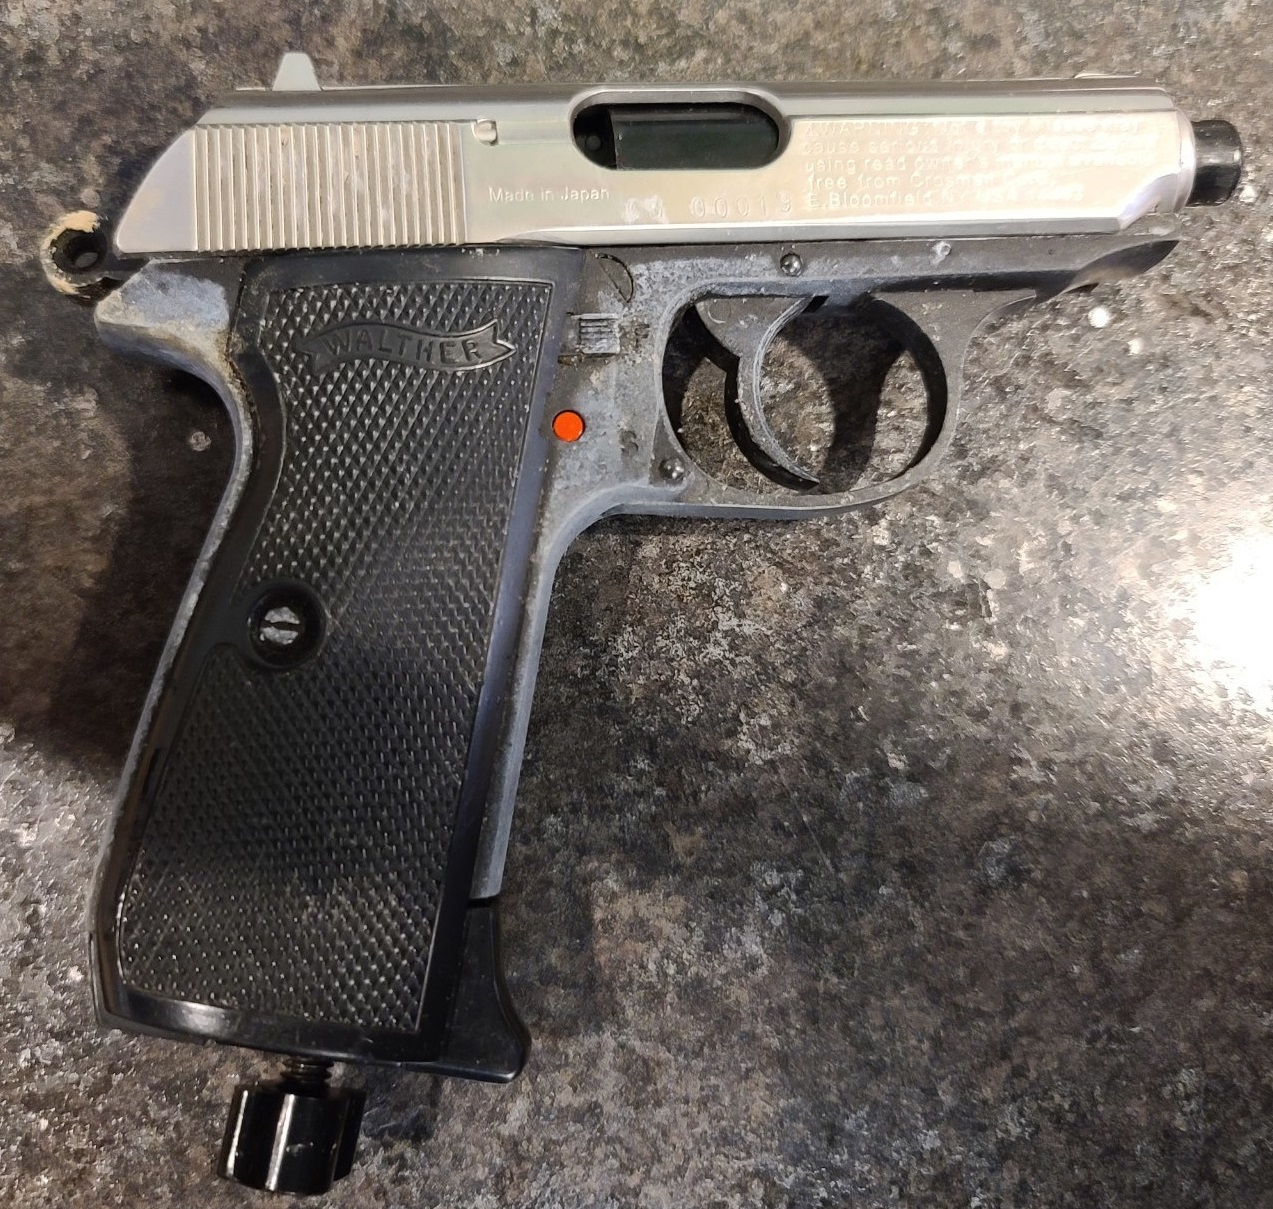 Fredericton police say the firearm at the centre of this weekend's weapons call at the Regent Mall was an air powered BB gun.